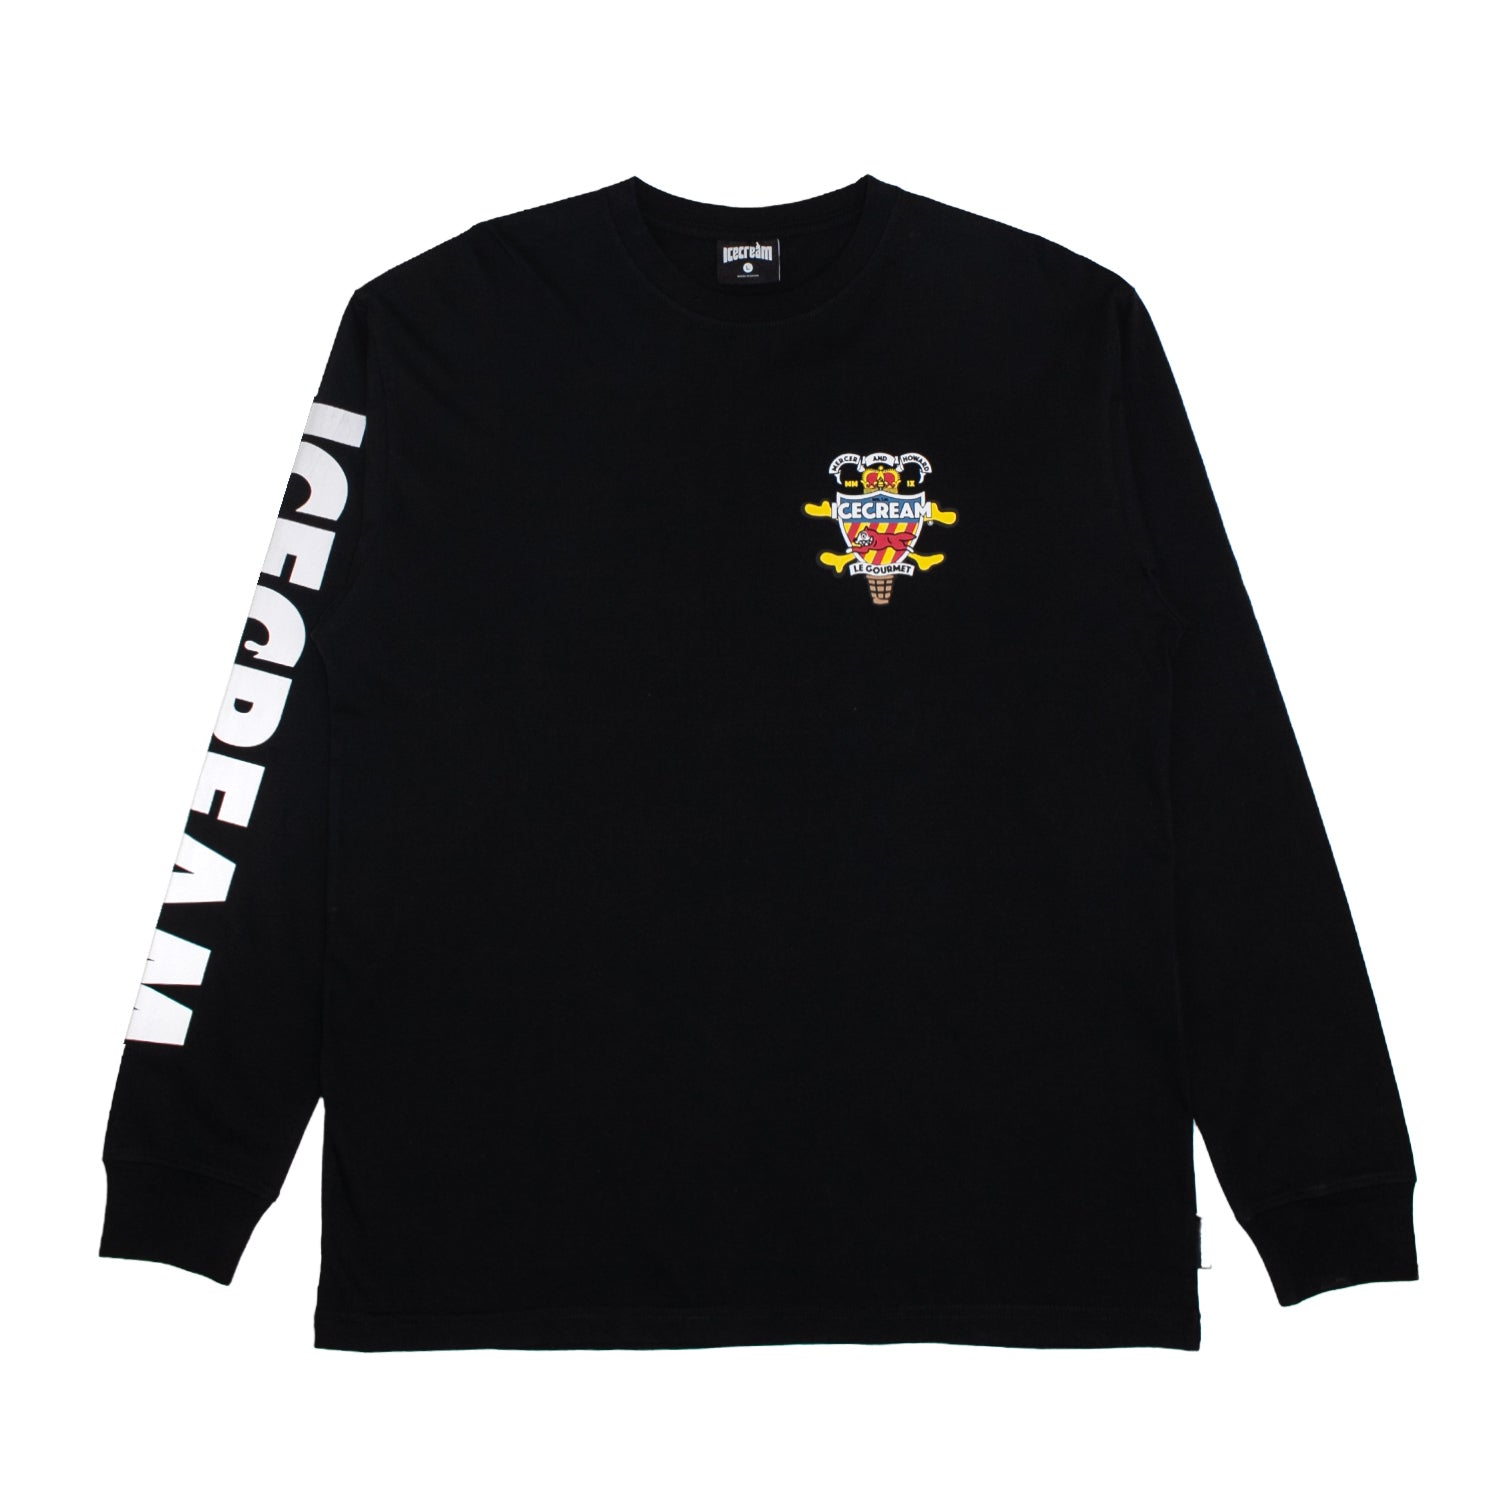 AFTERPARTY LS KNIT